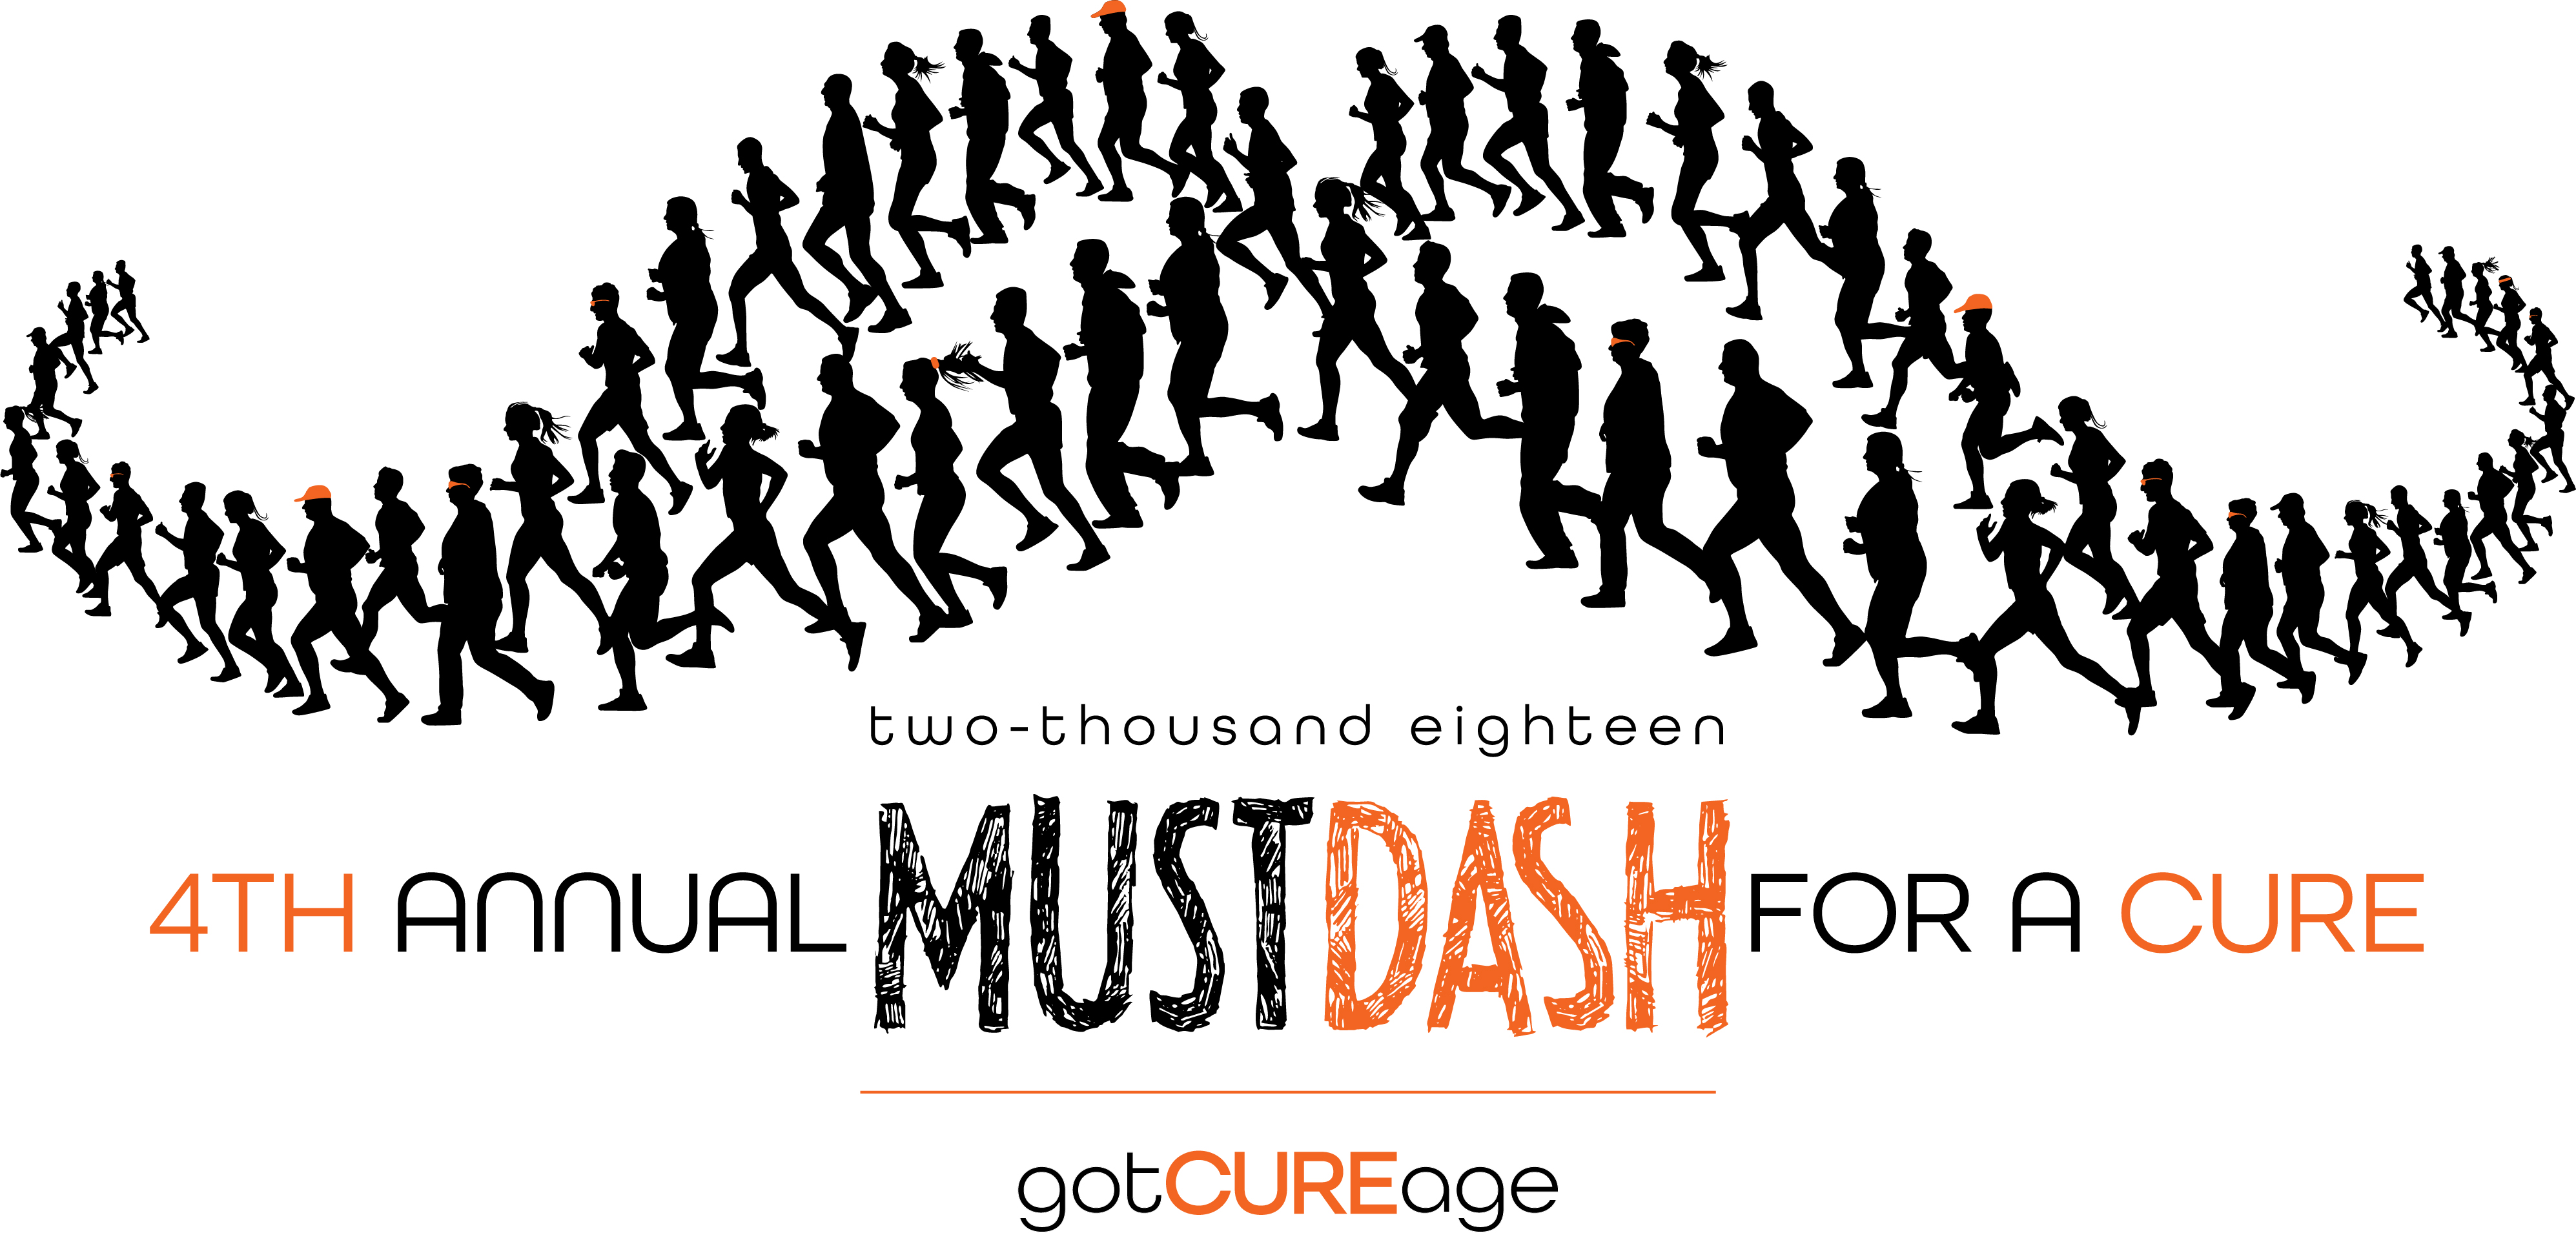 Must Dash for a Cure 5K